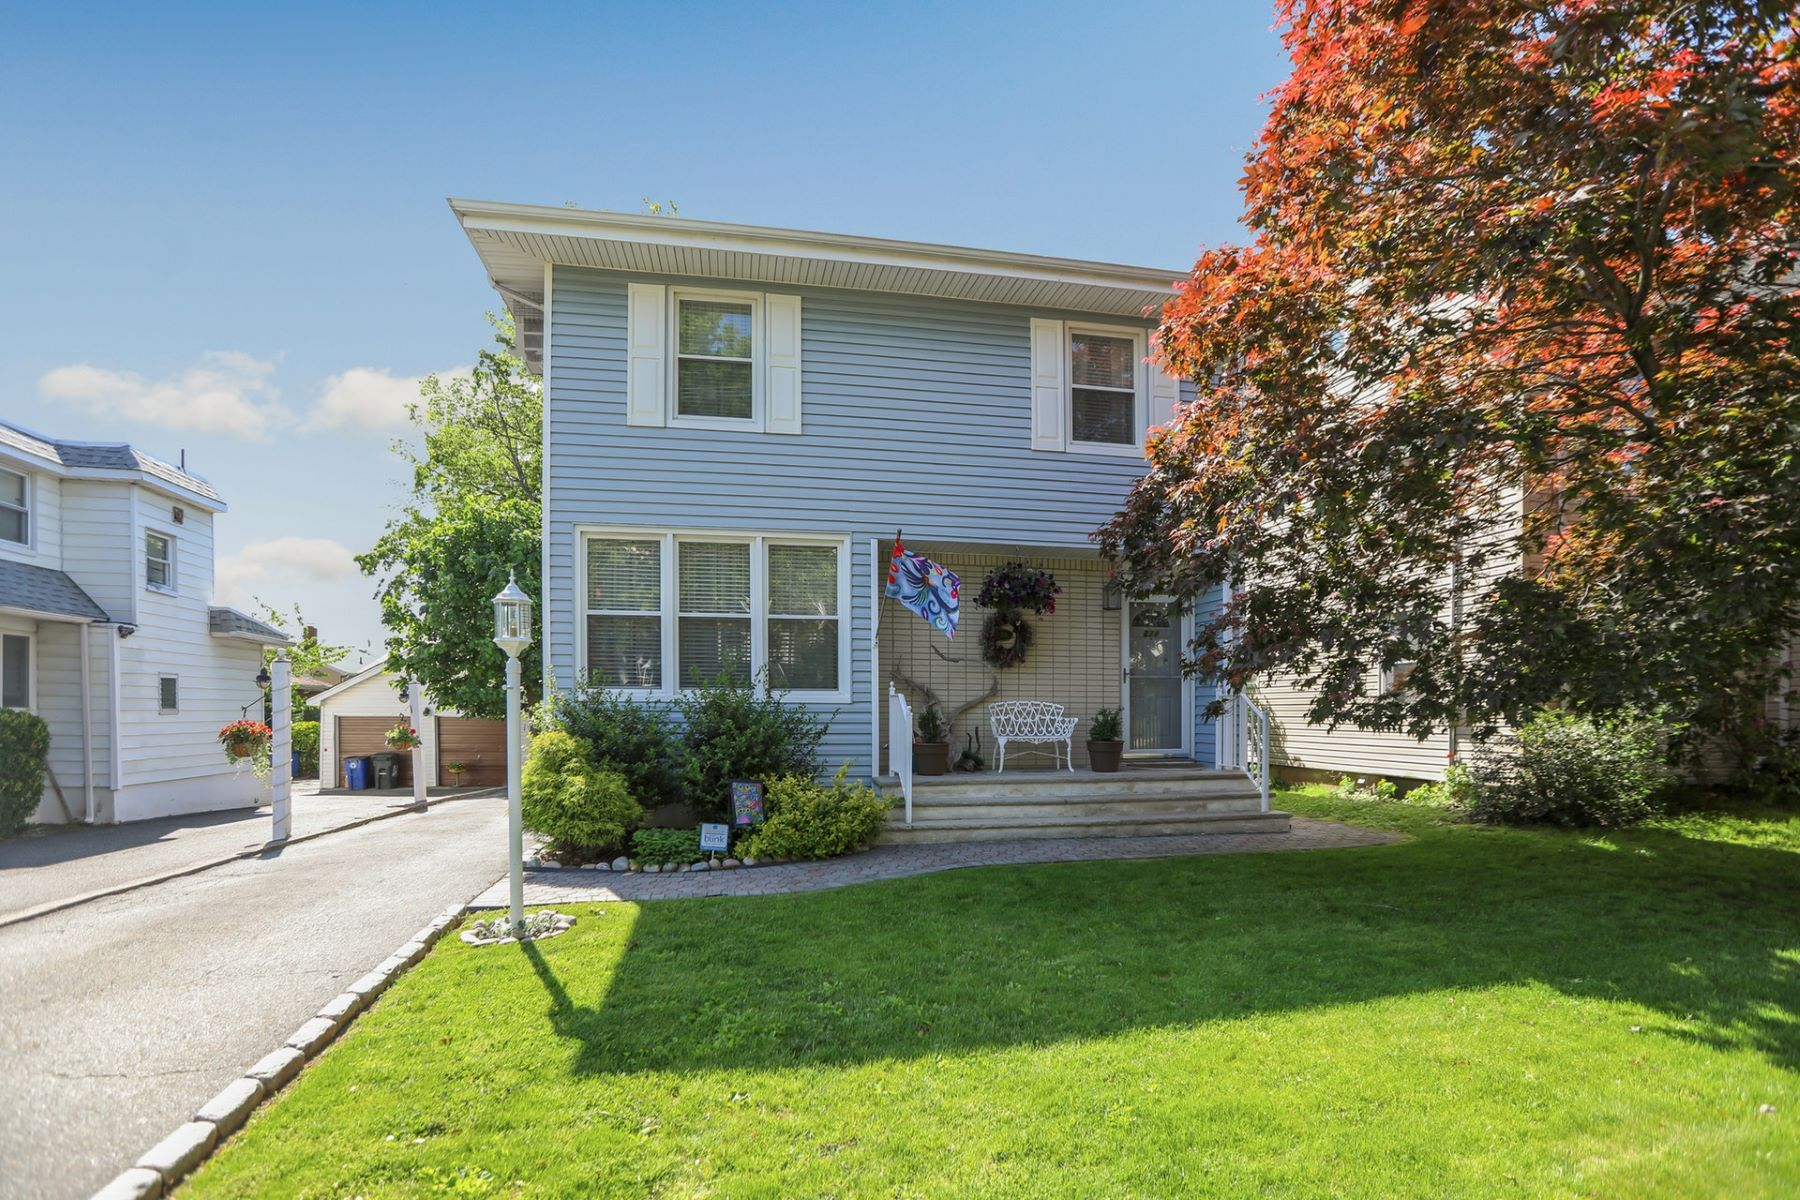 Single Family Homes for Sale at Move-in-ready, sun-lit Colonial 238 Terrace Ave Hasbrouck Heights, New Jersey 07604 United States